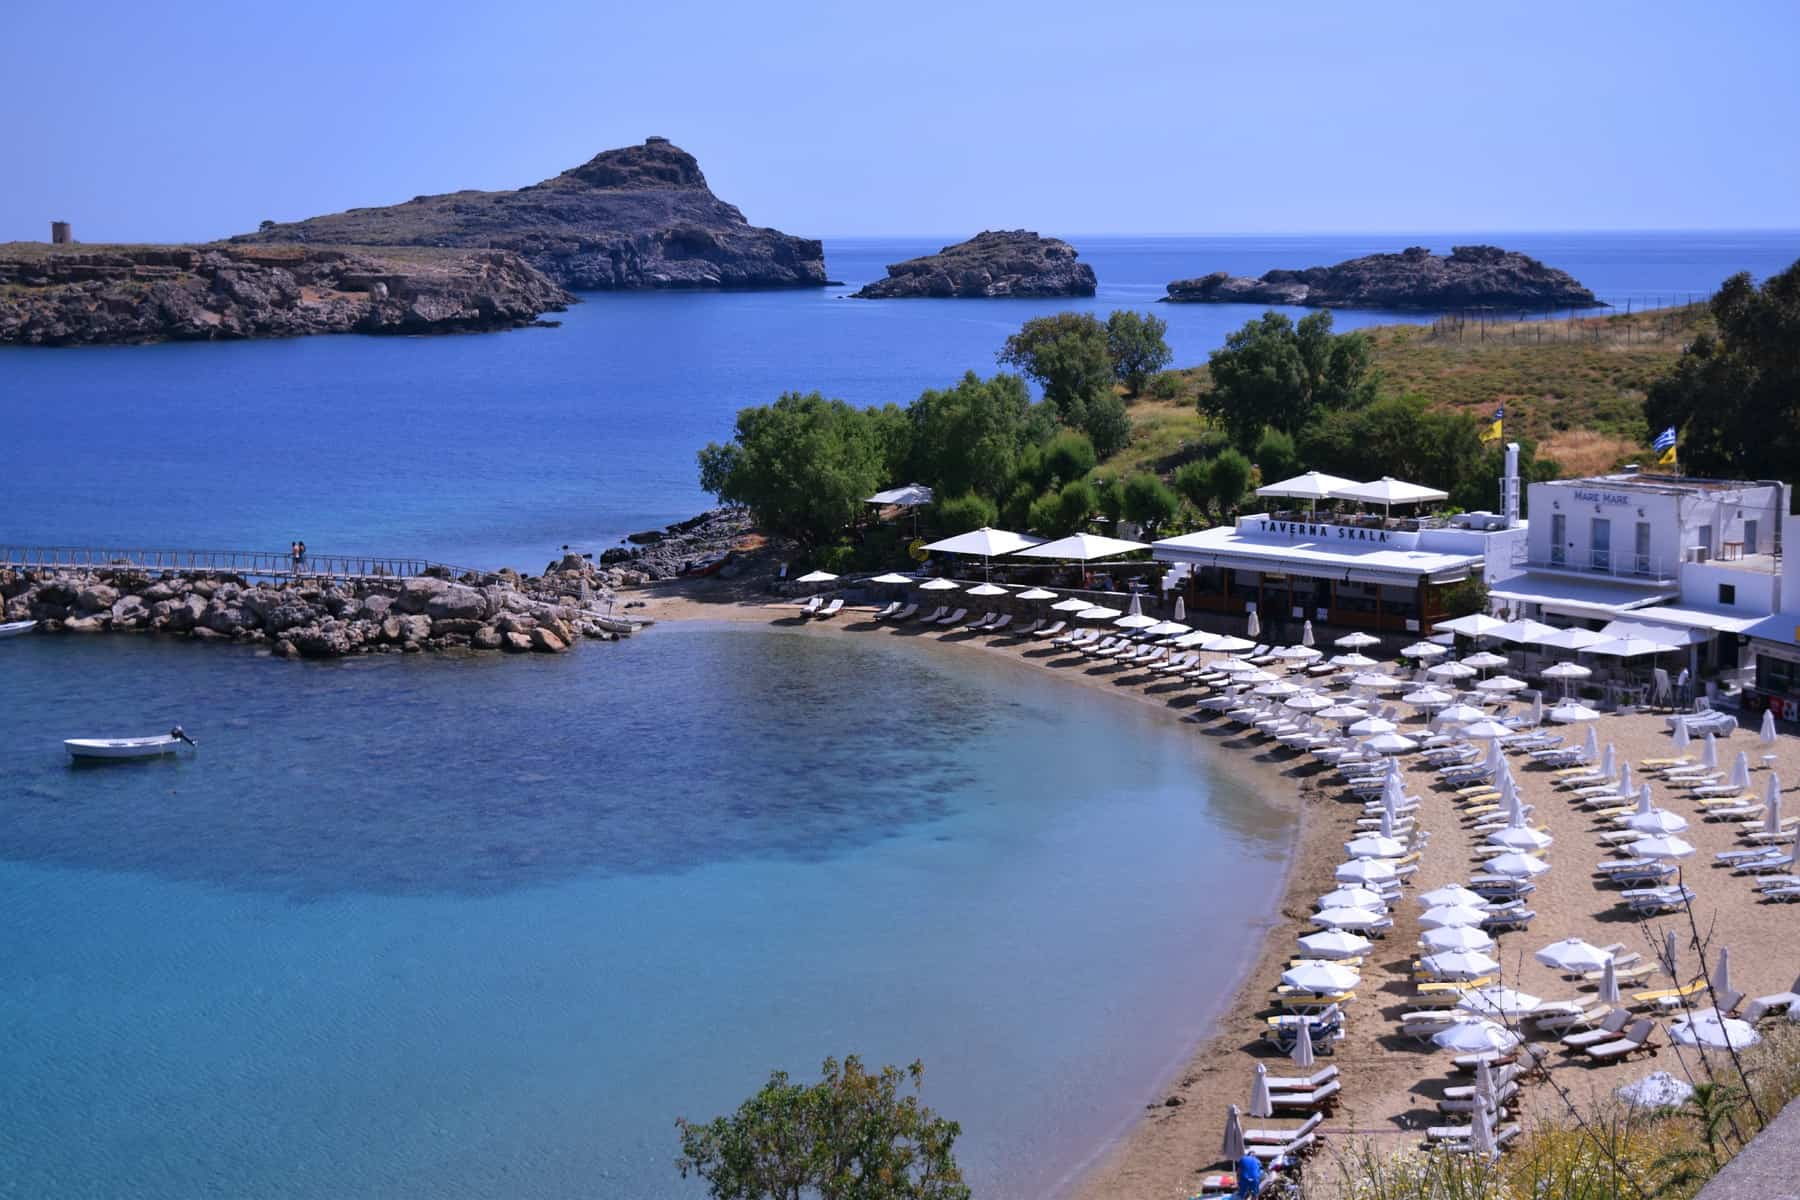 Picture of a beach bay in Rhodes